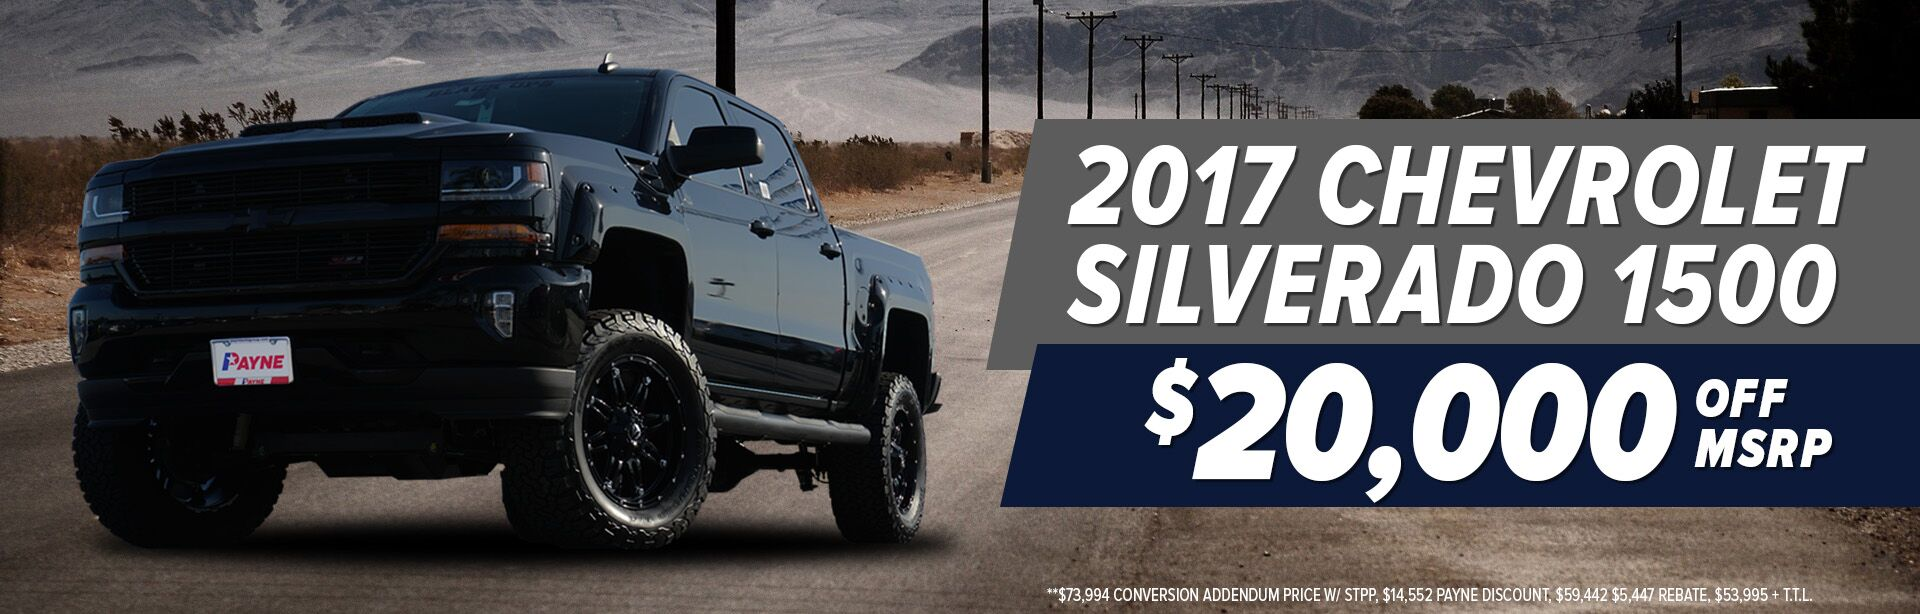 Commercial offers chevy silverado